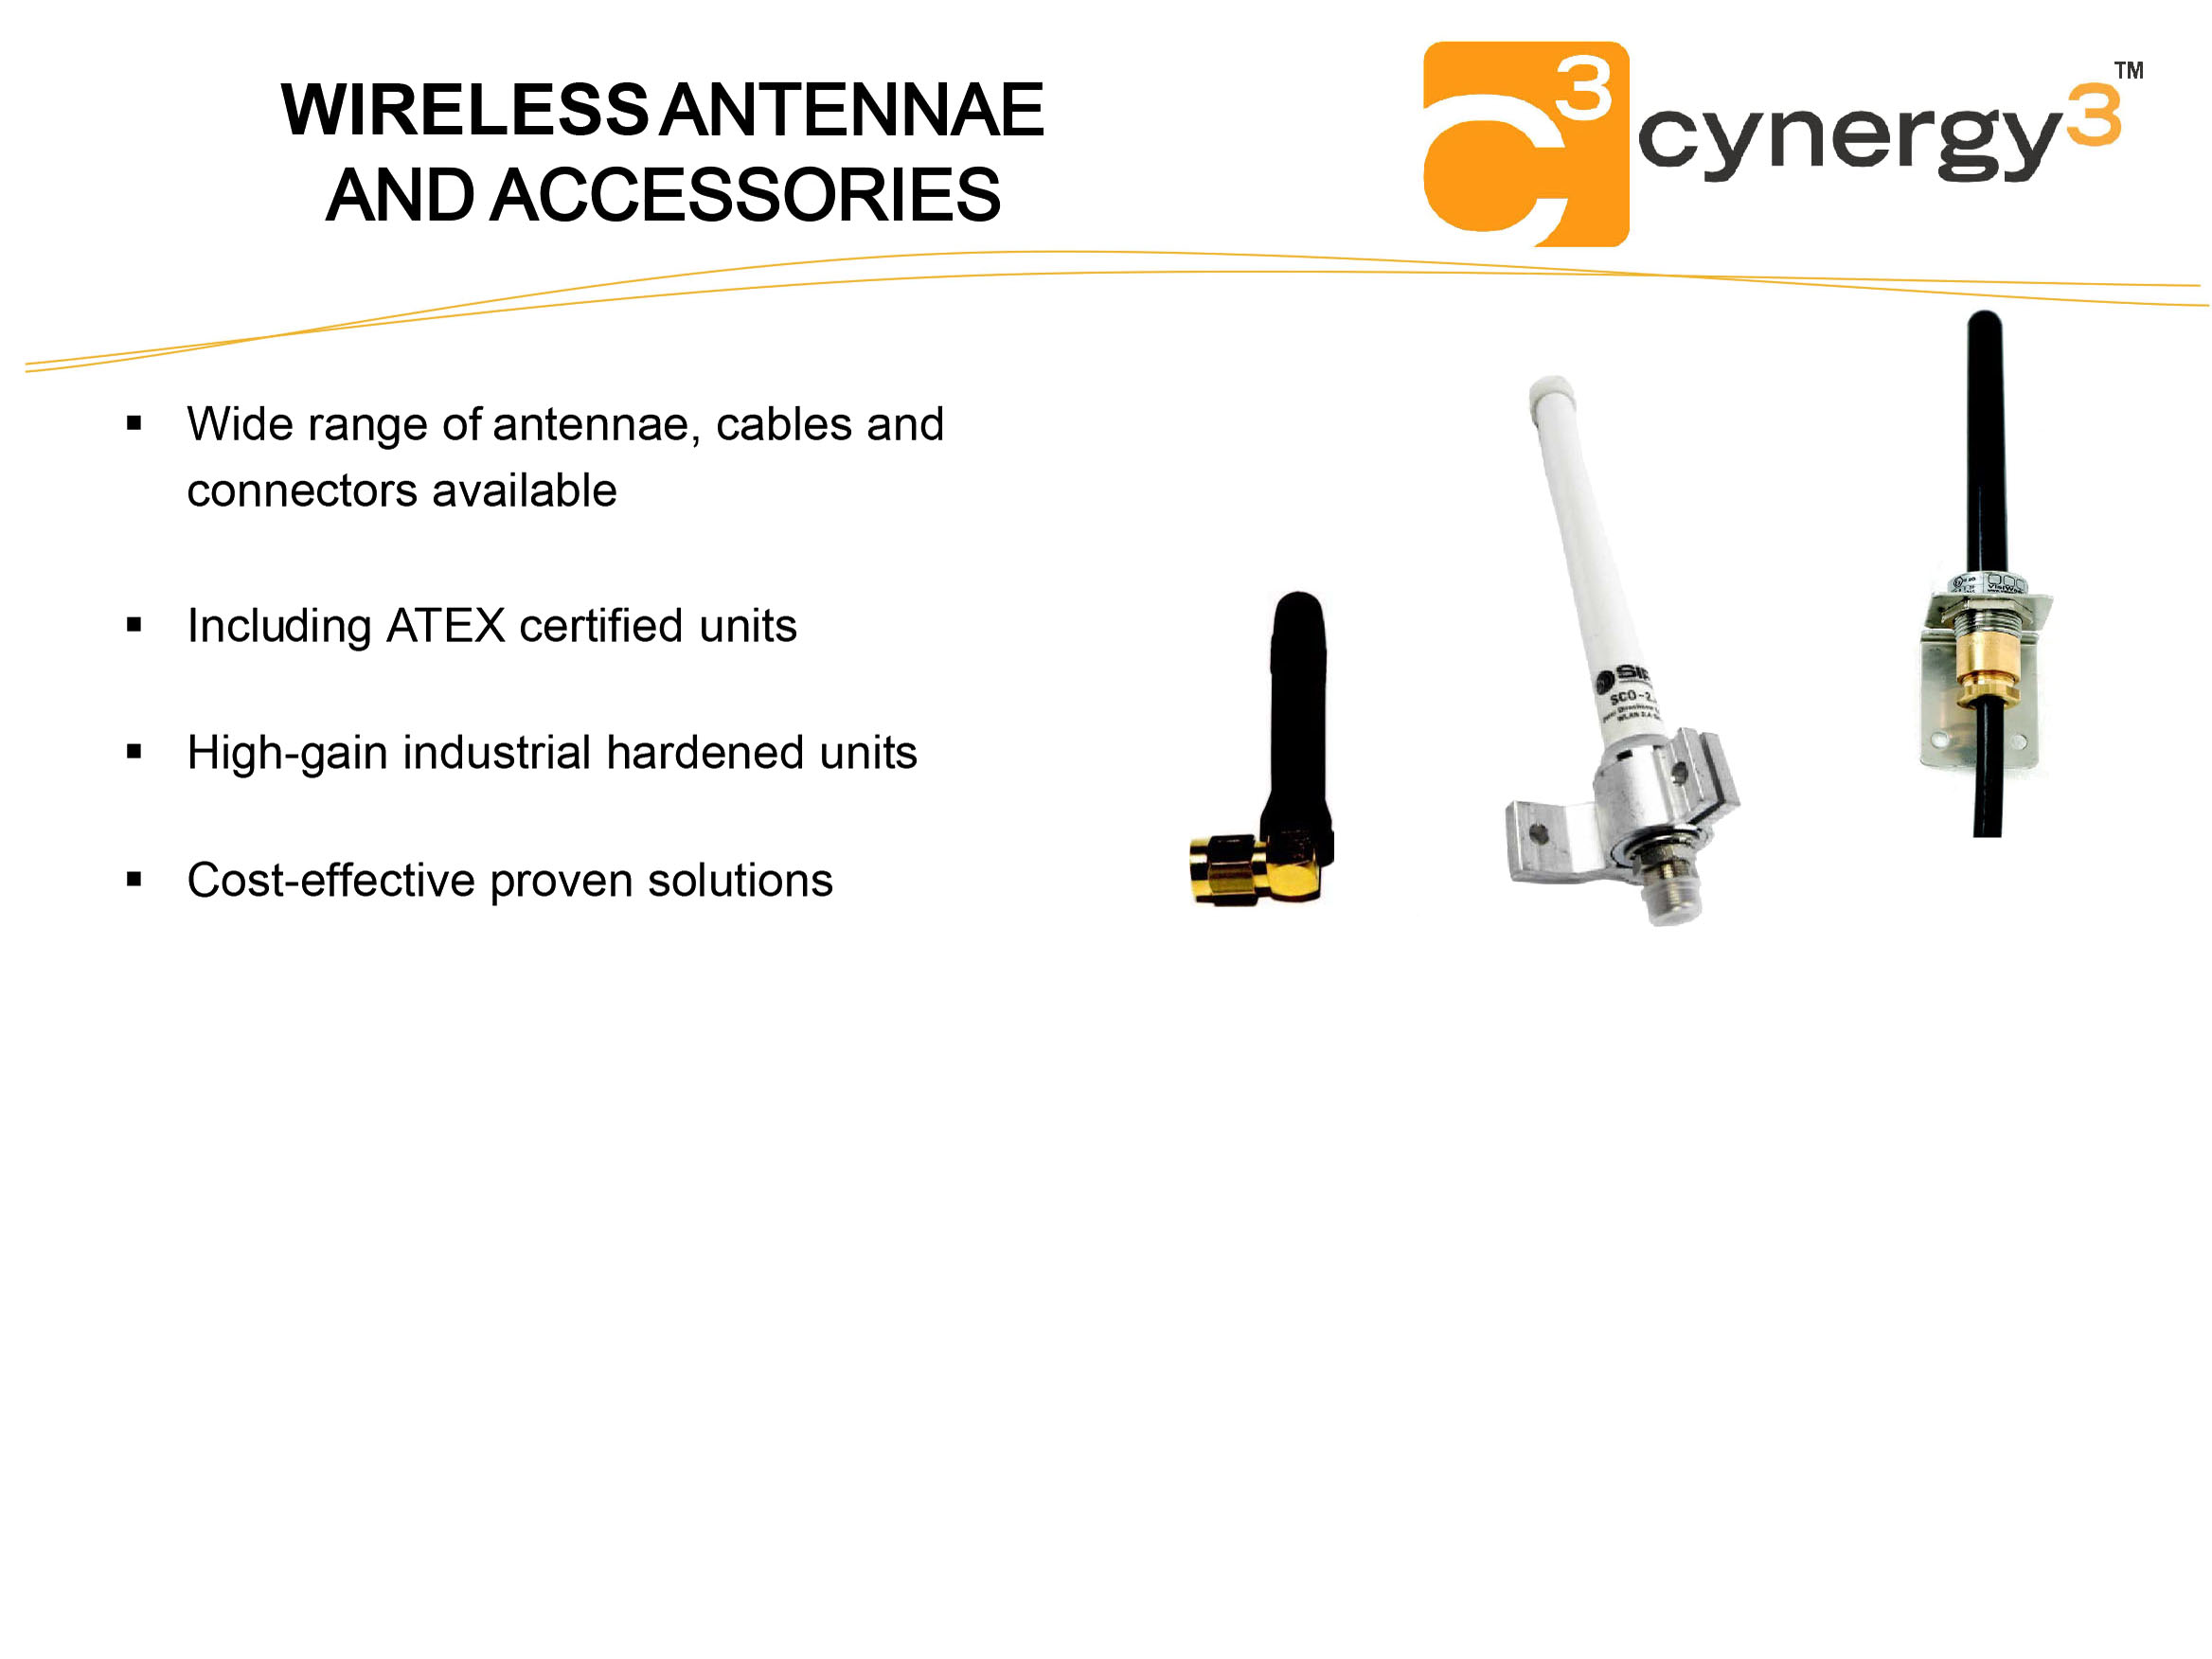 wirelessantennae